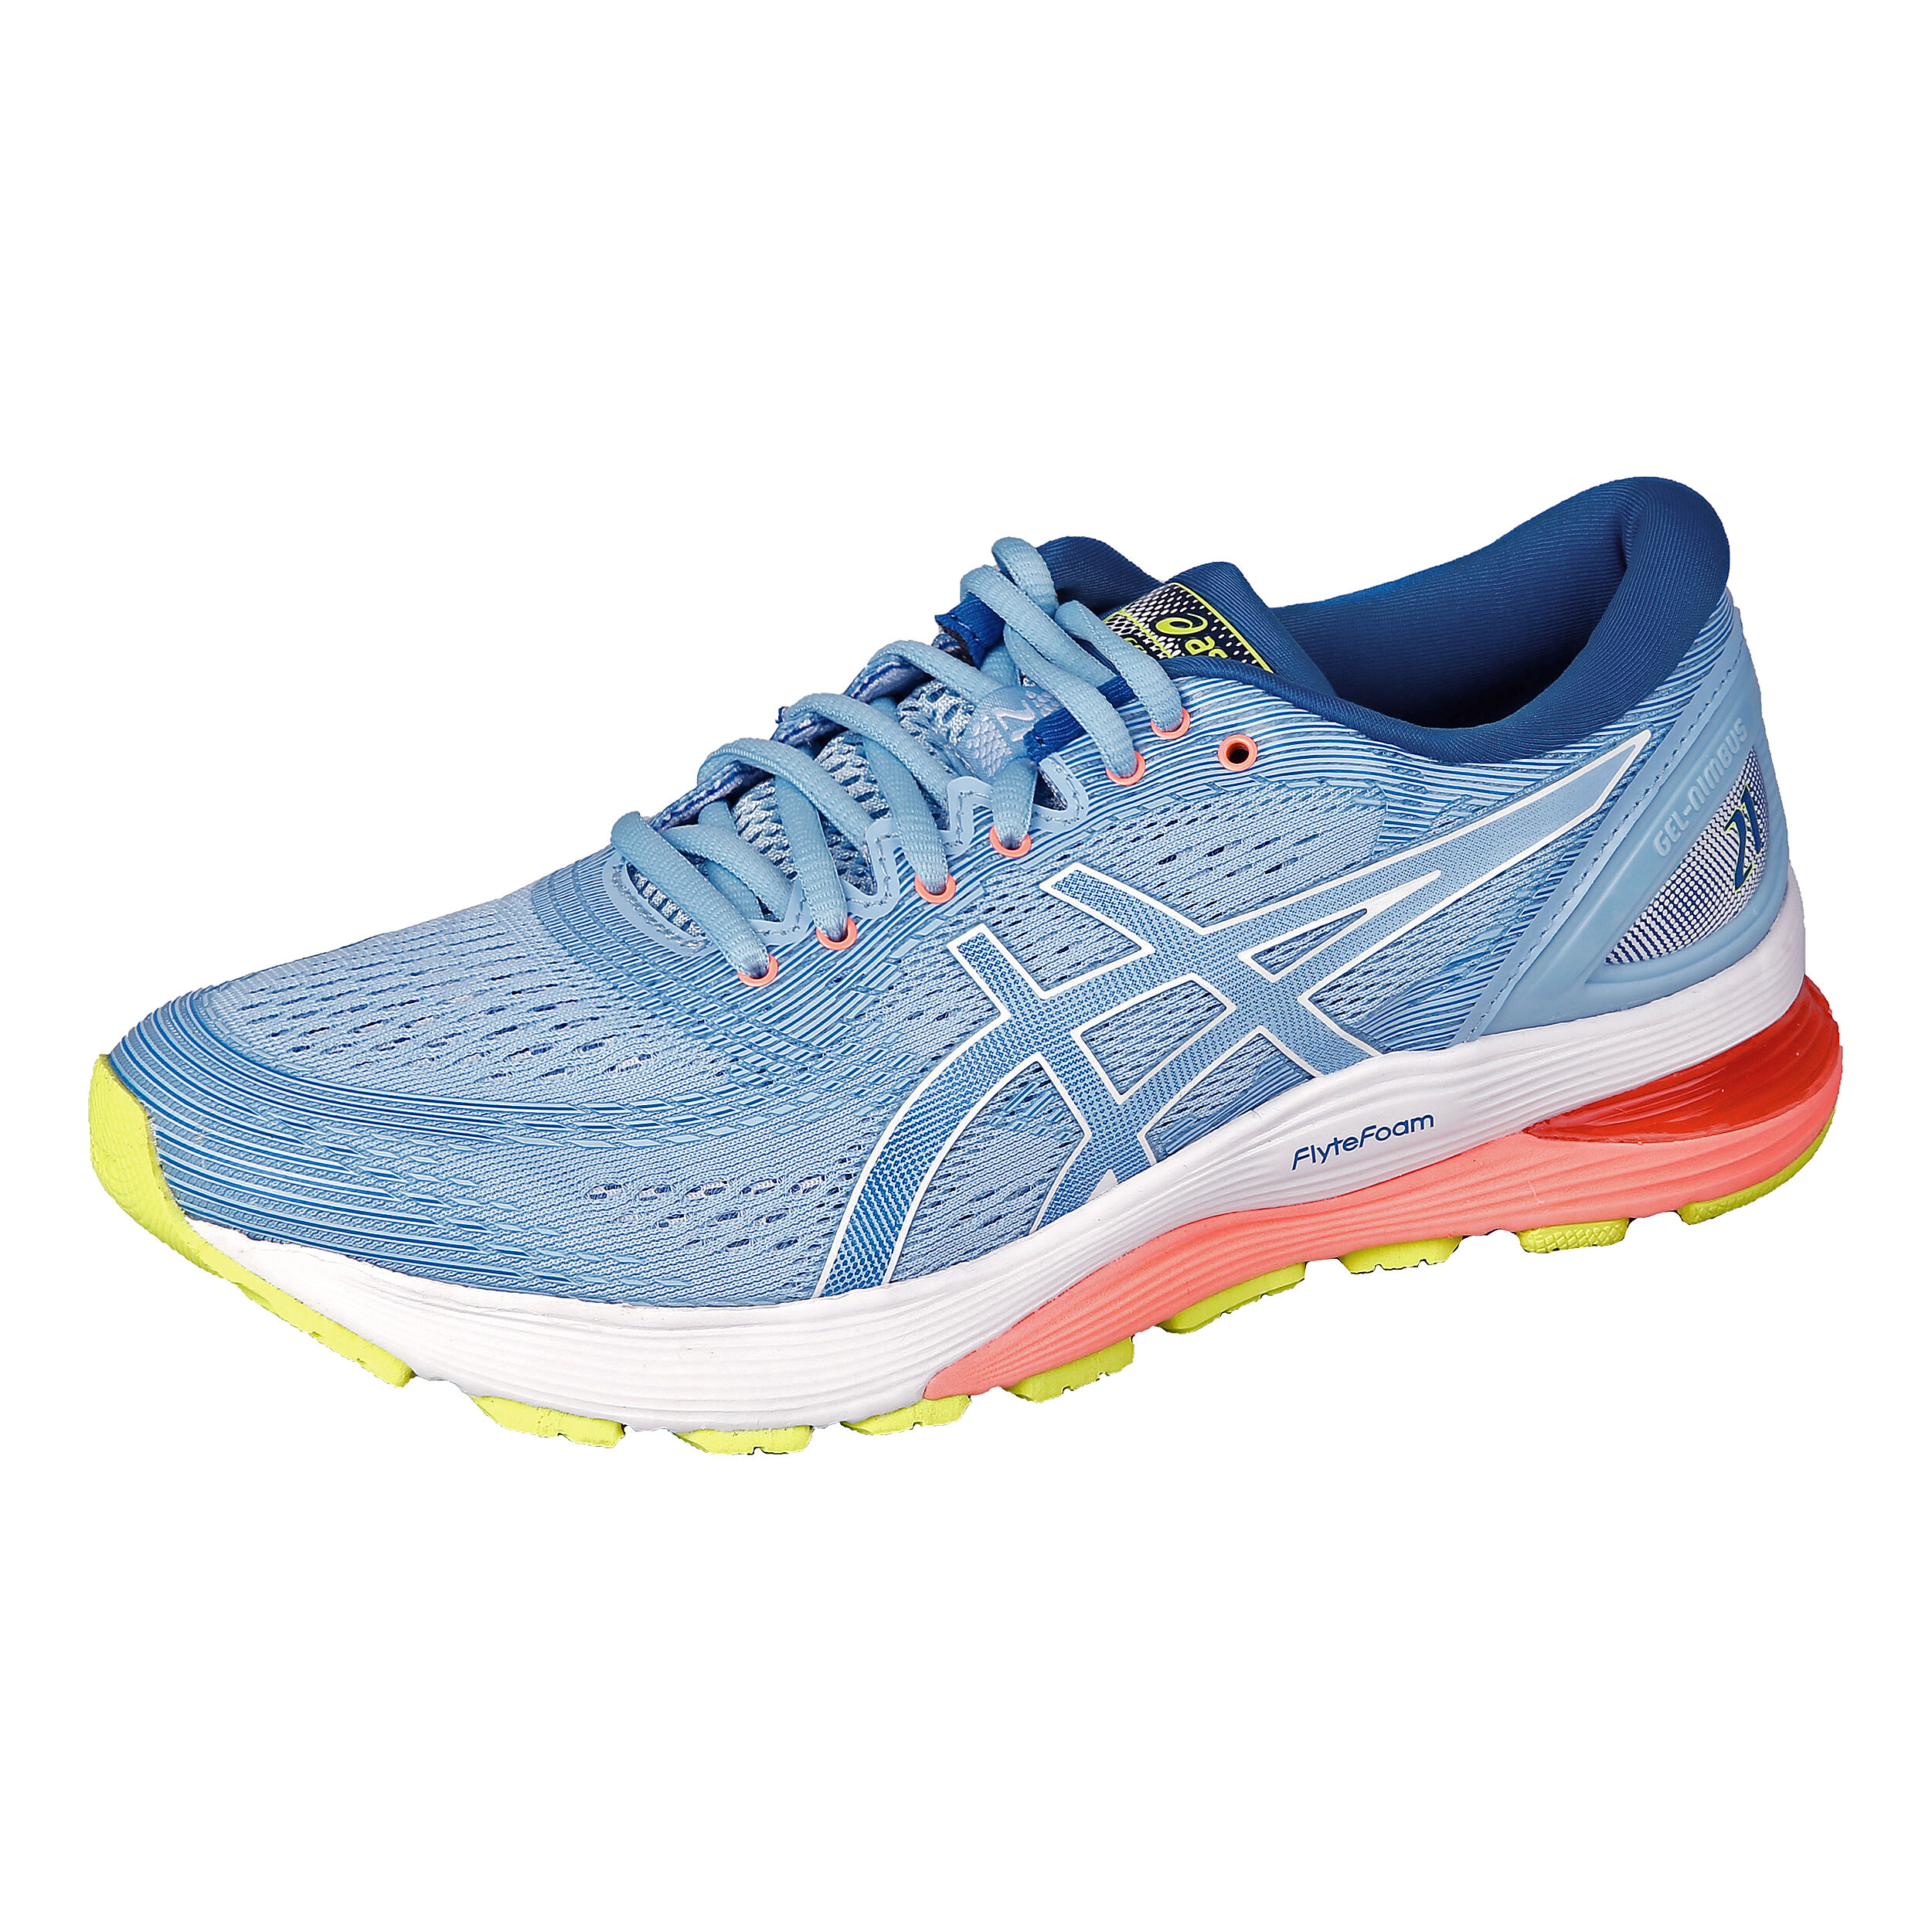 buy Asics Gel-Nimbus 21 Neutral Running Shoe Women - Light ...